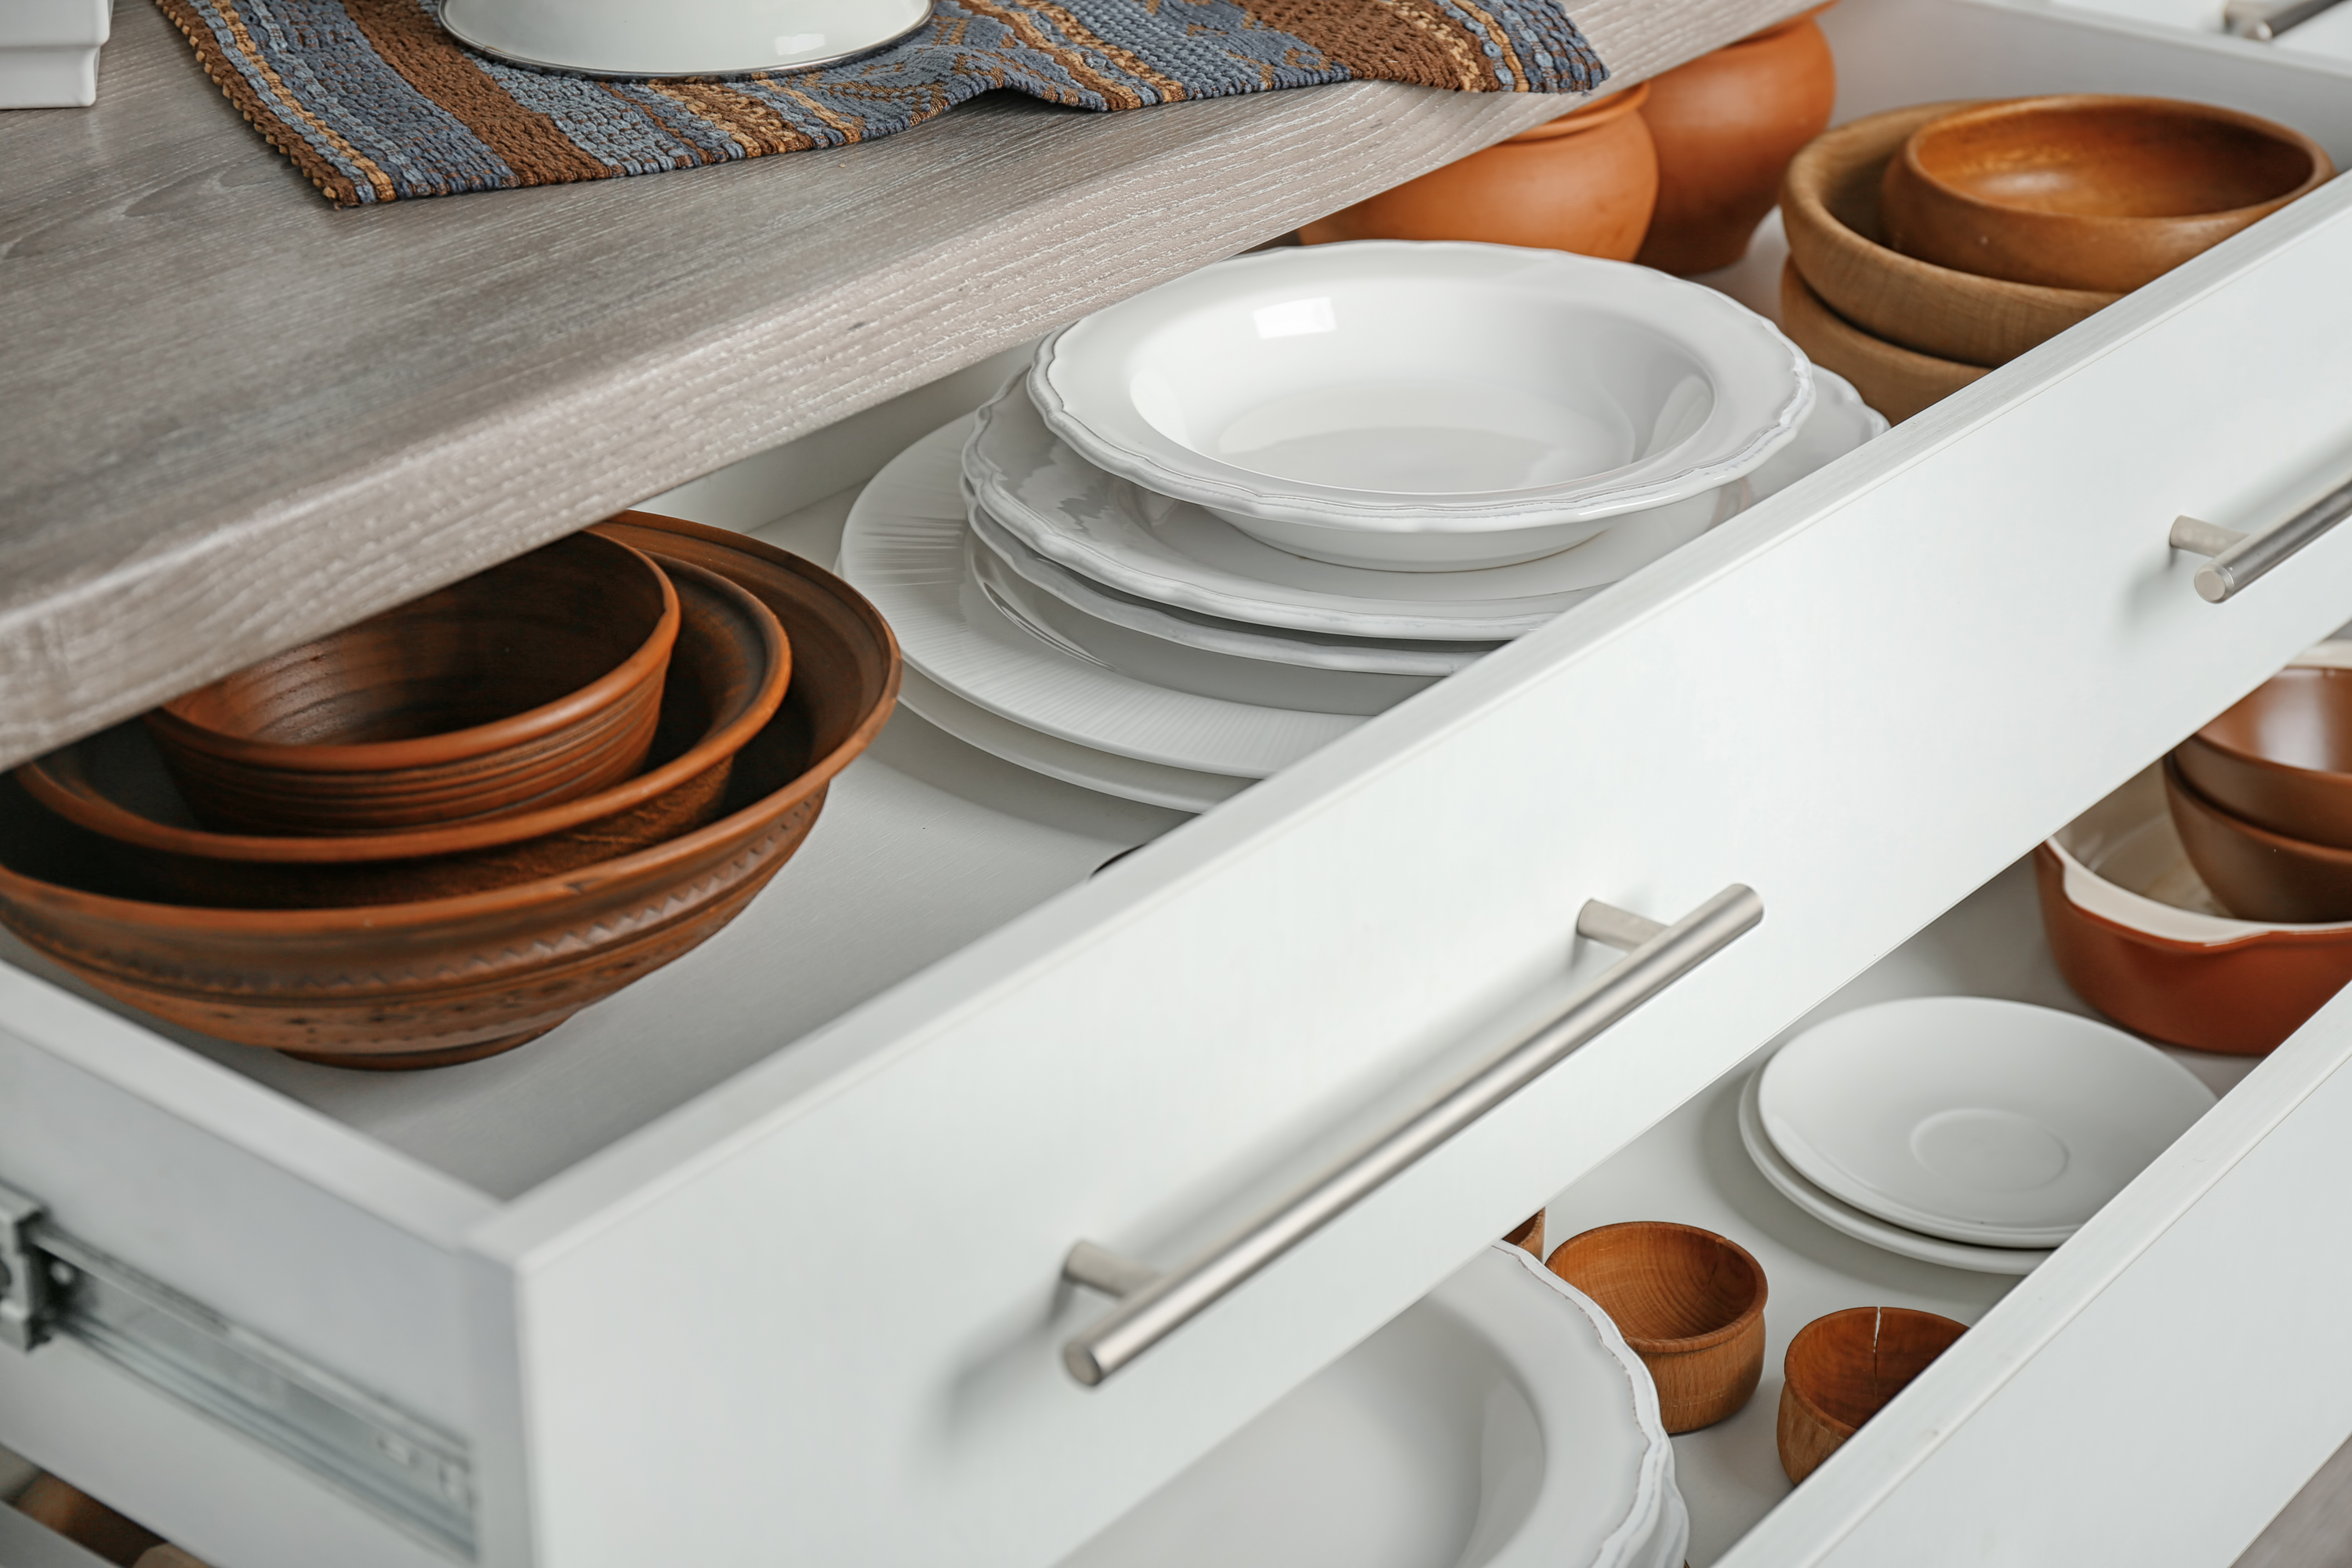 kitchen professional organizing storage solution example